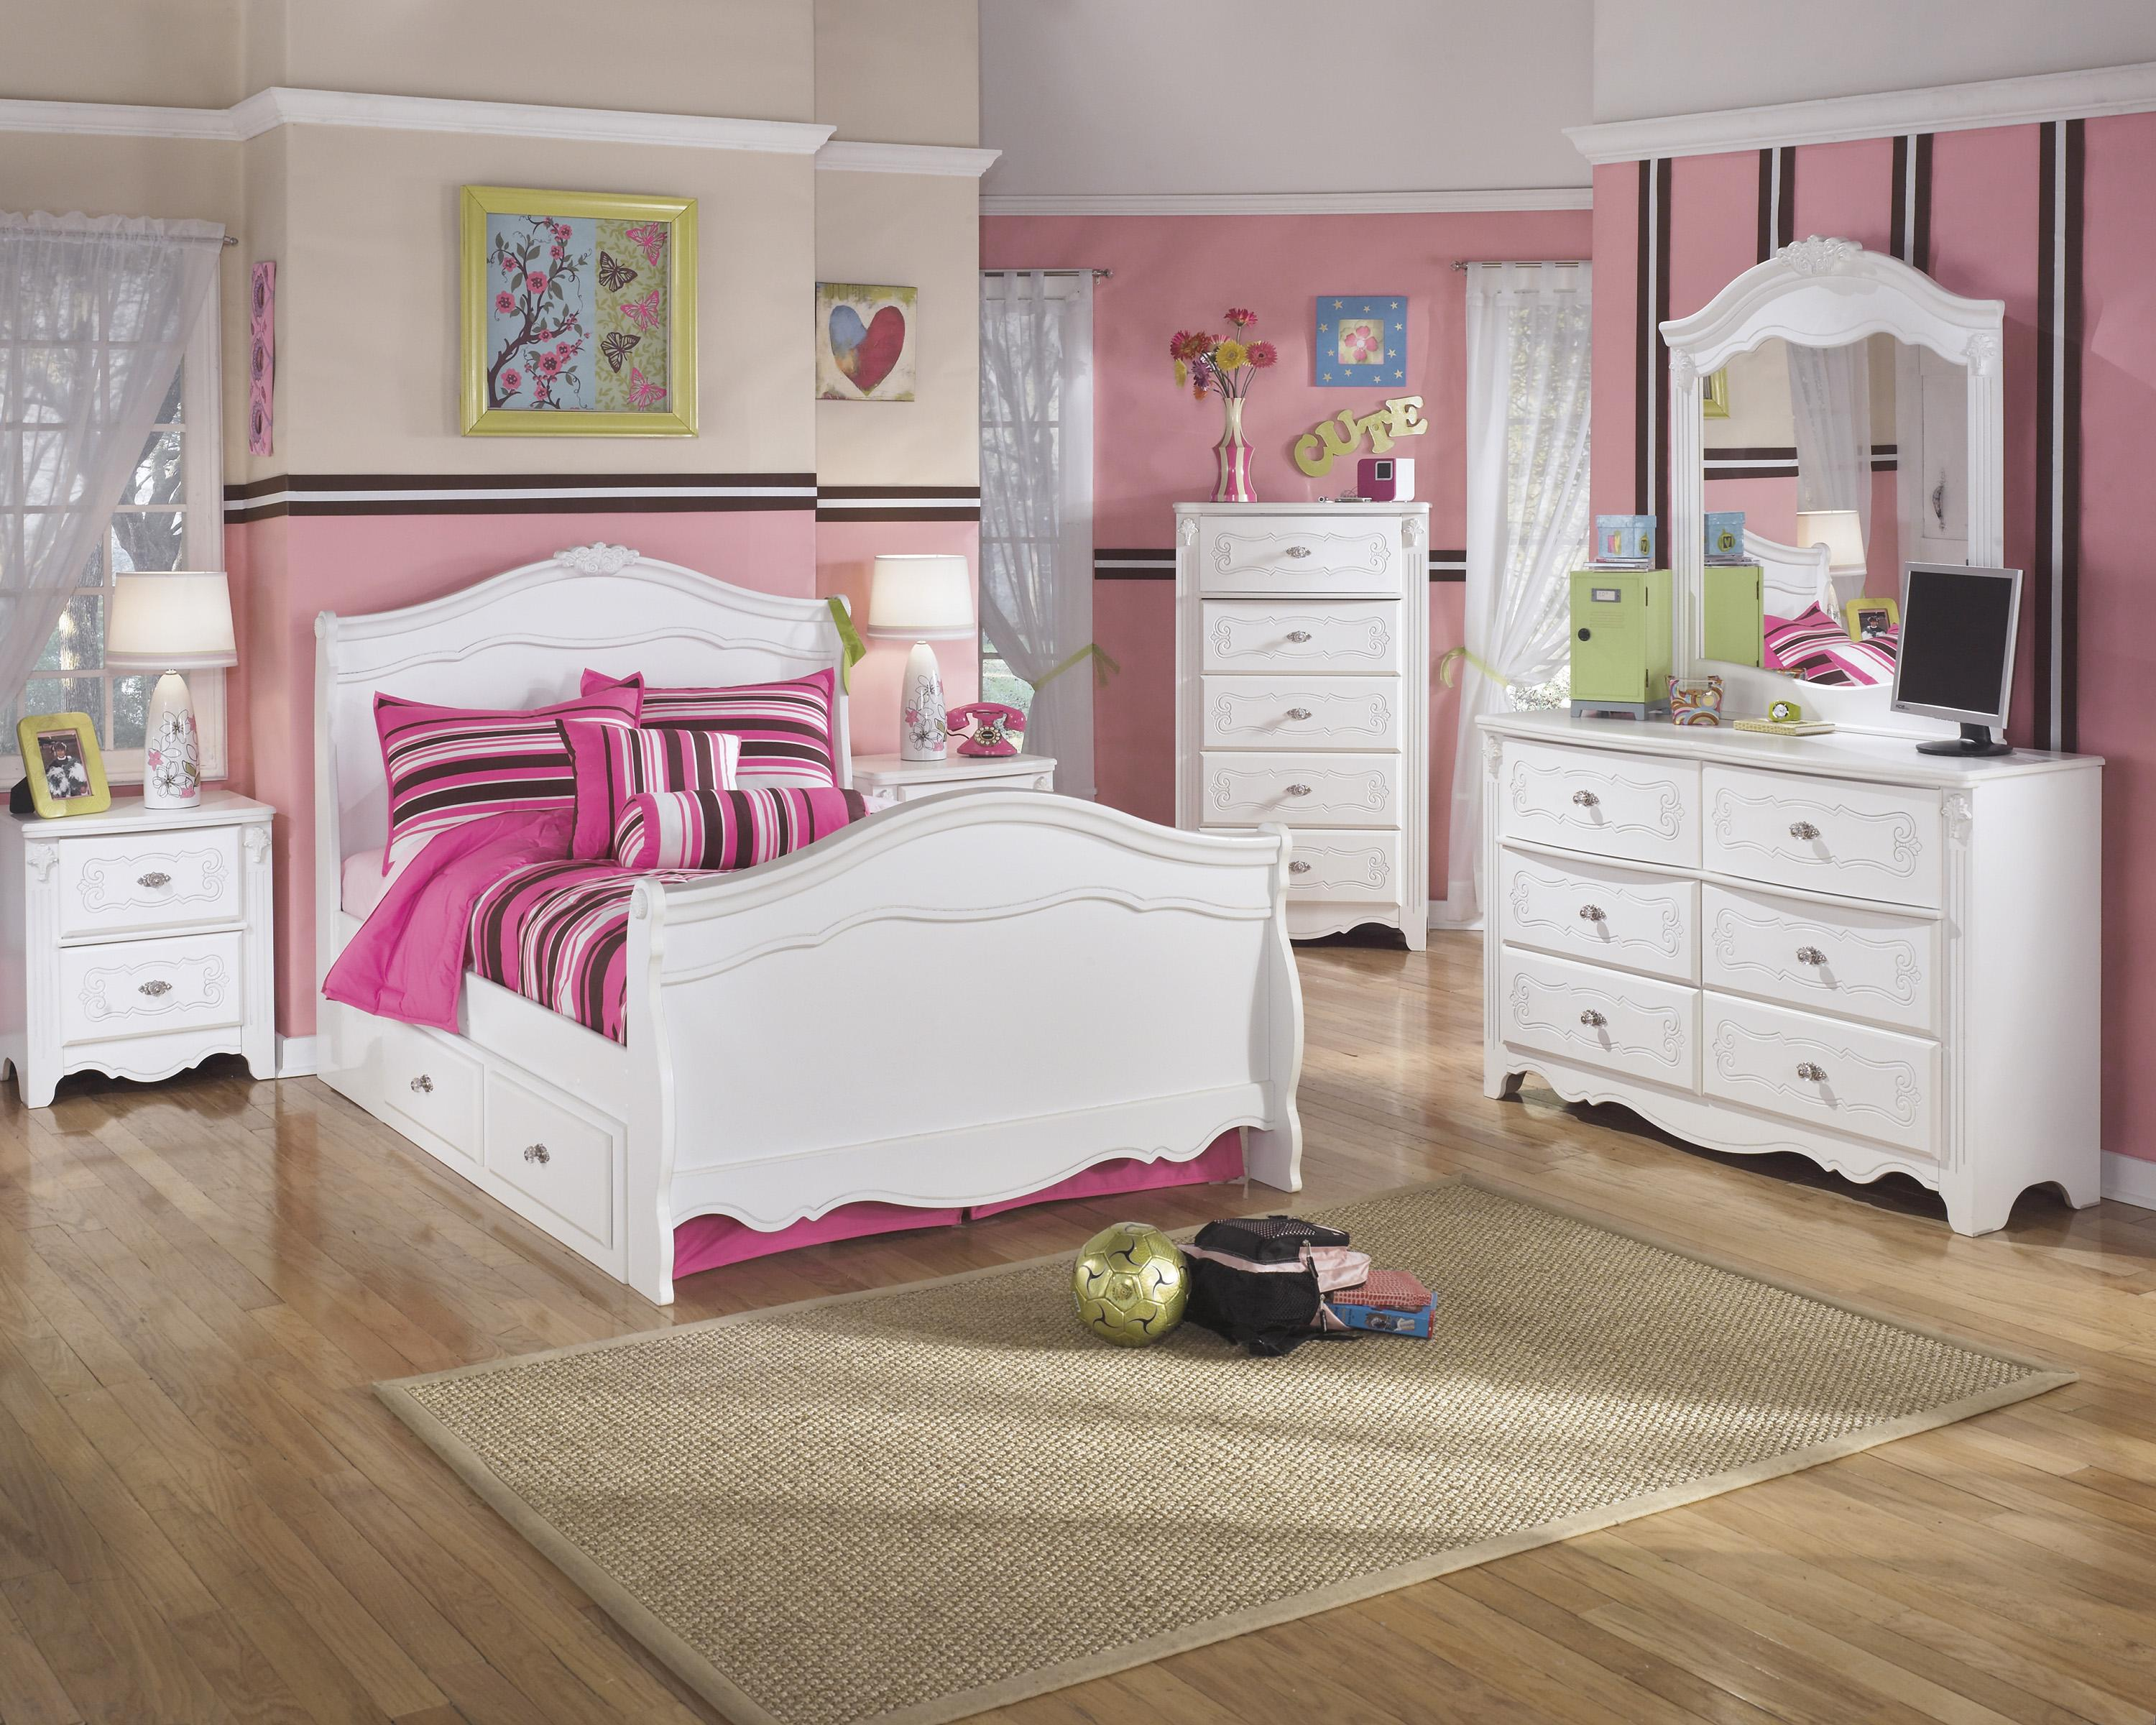 Signature Design by Ashley Exquisite Full Bedroom Group - Item Number: B188 F Bedroom Group 2